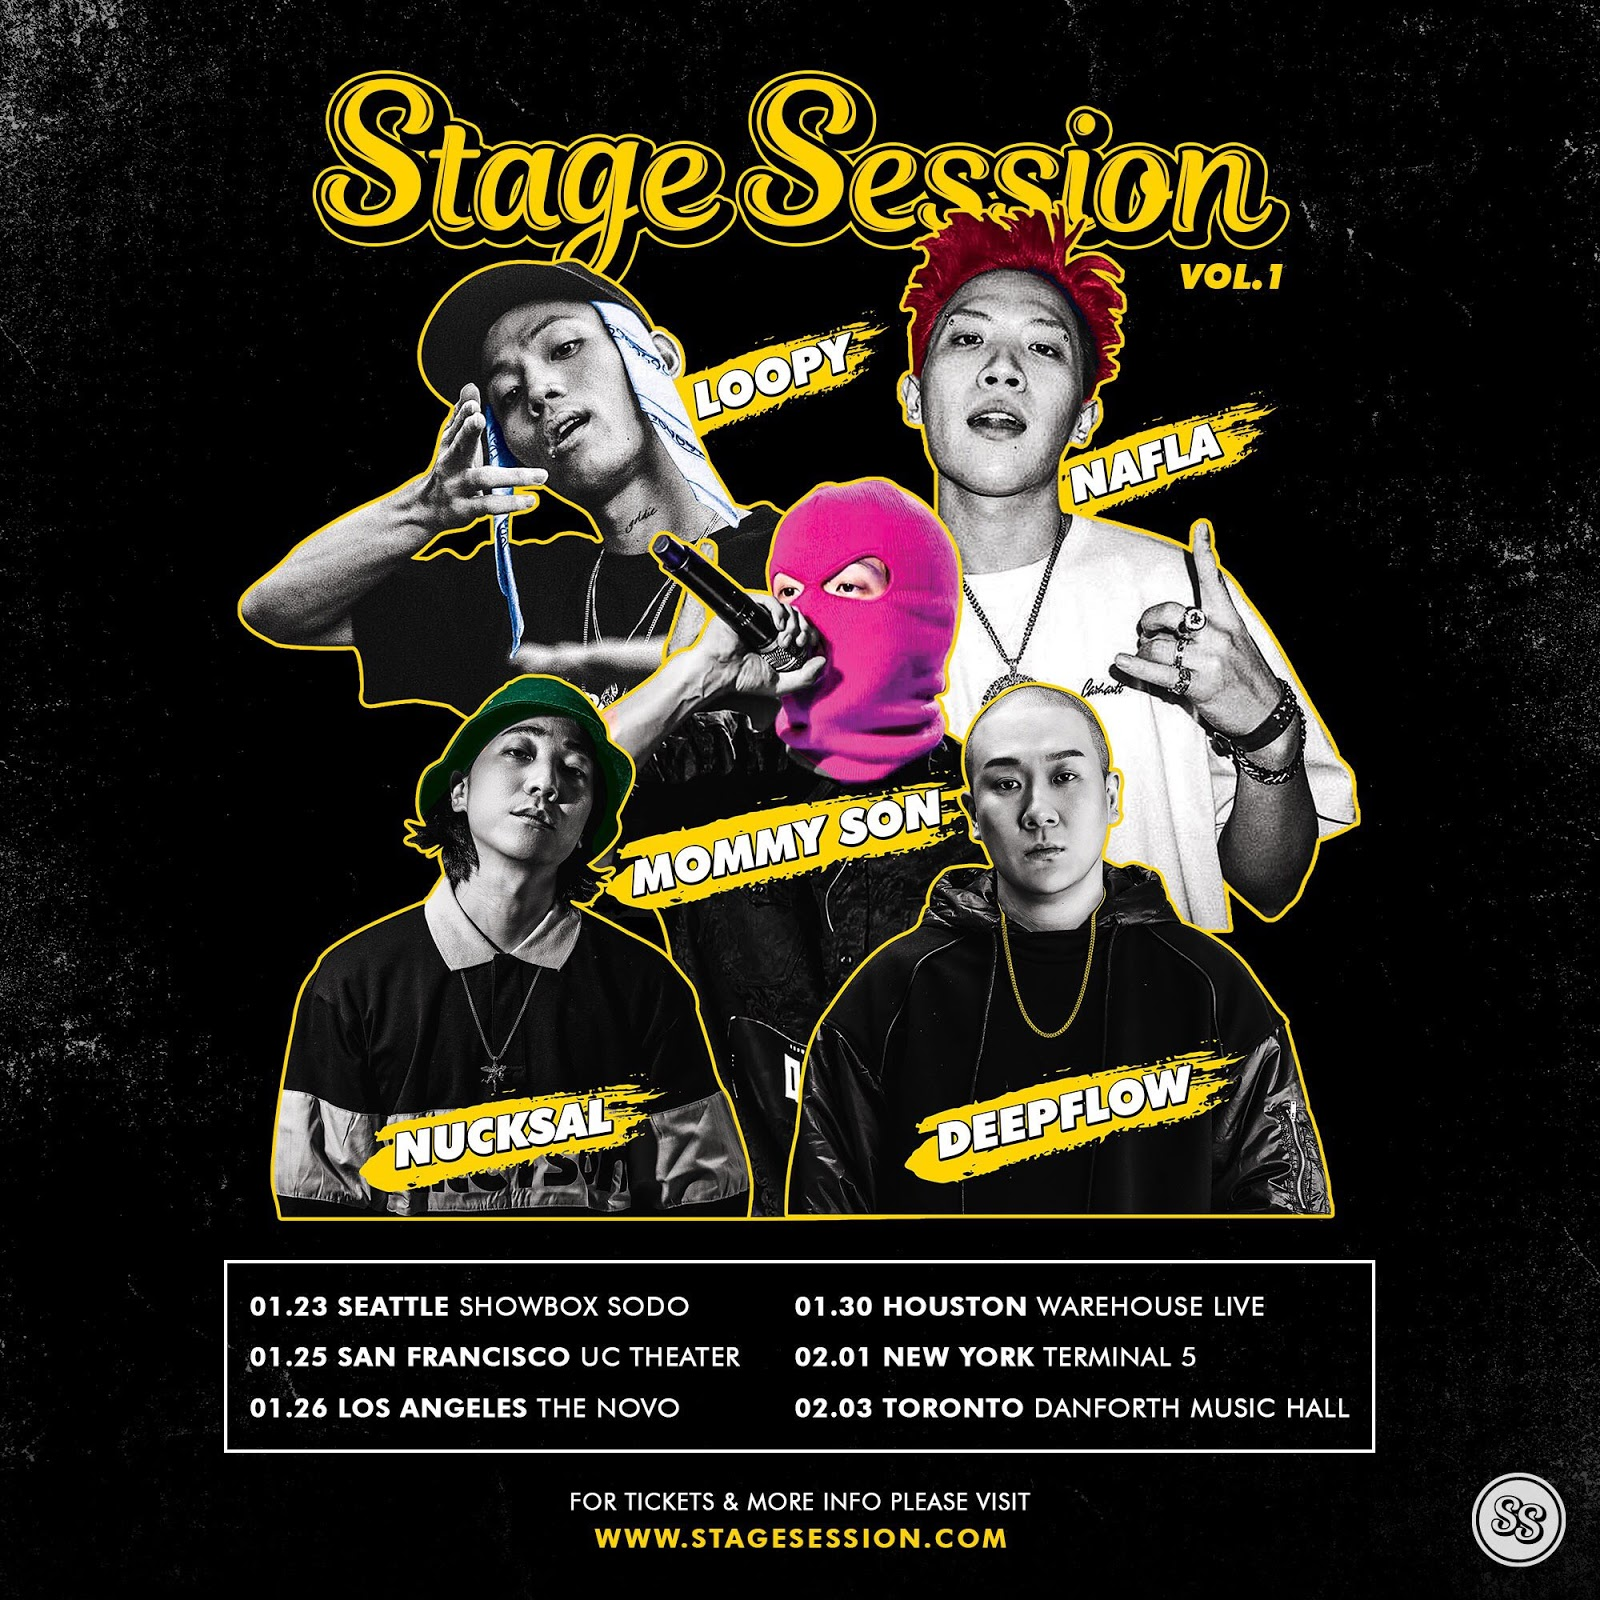 Concert Watch: Show Me The Money 777 - khip-hop artists to